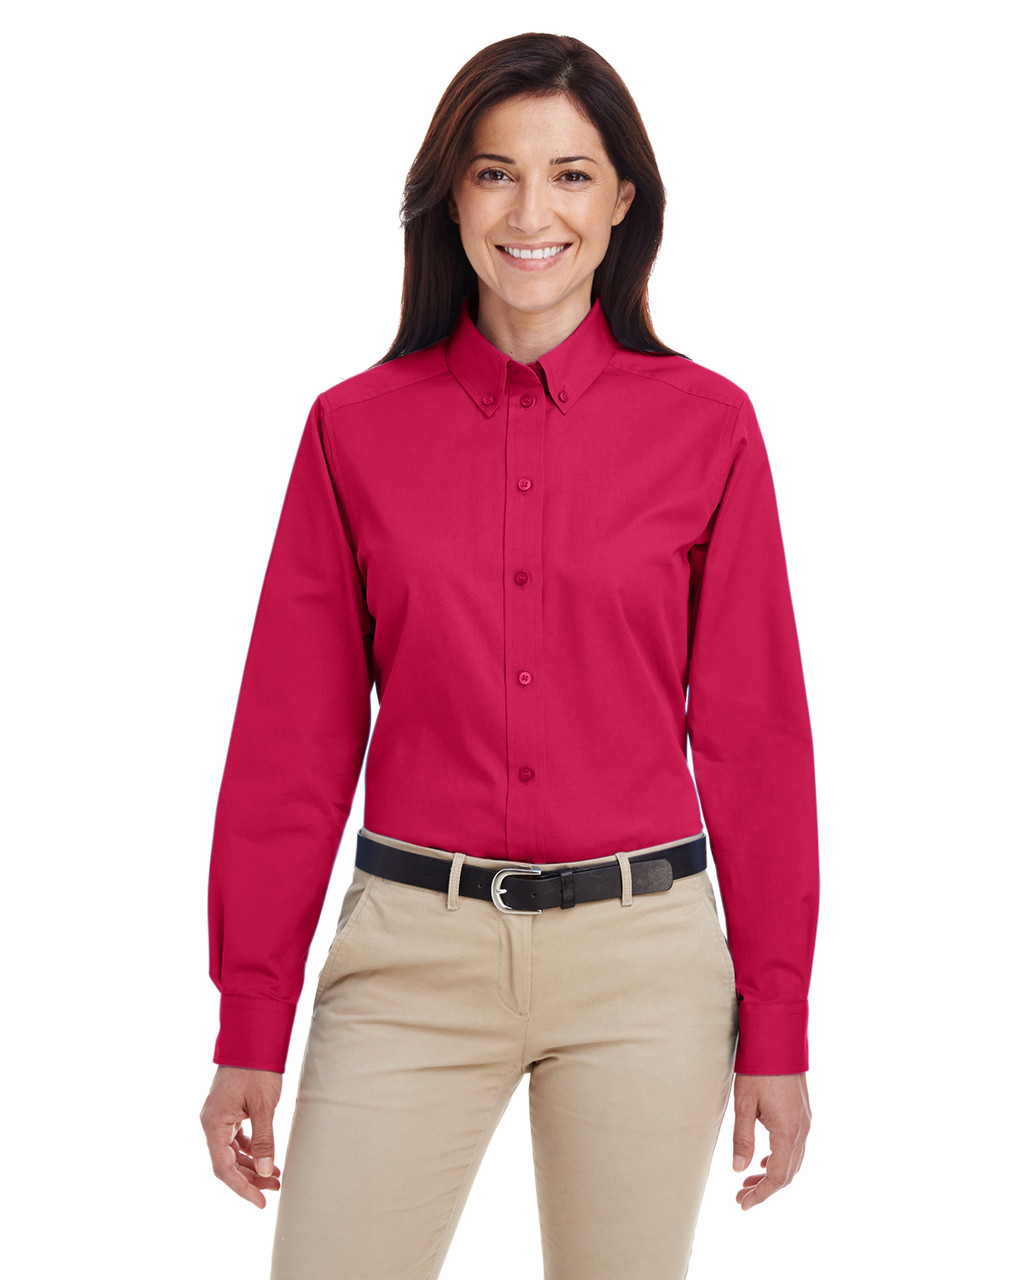 Red - M581W Harriton Ladies' Foundation 100% Cotton Long Sleeve Twill Shirt with Teflon™